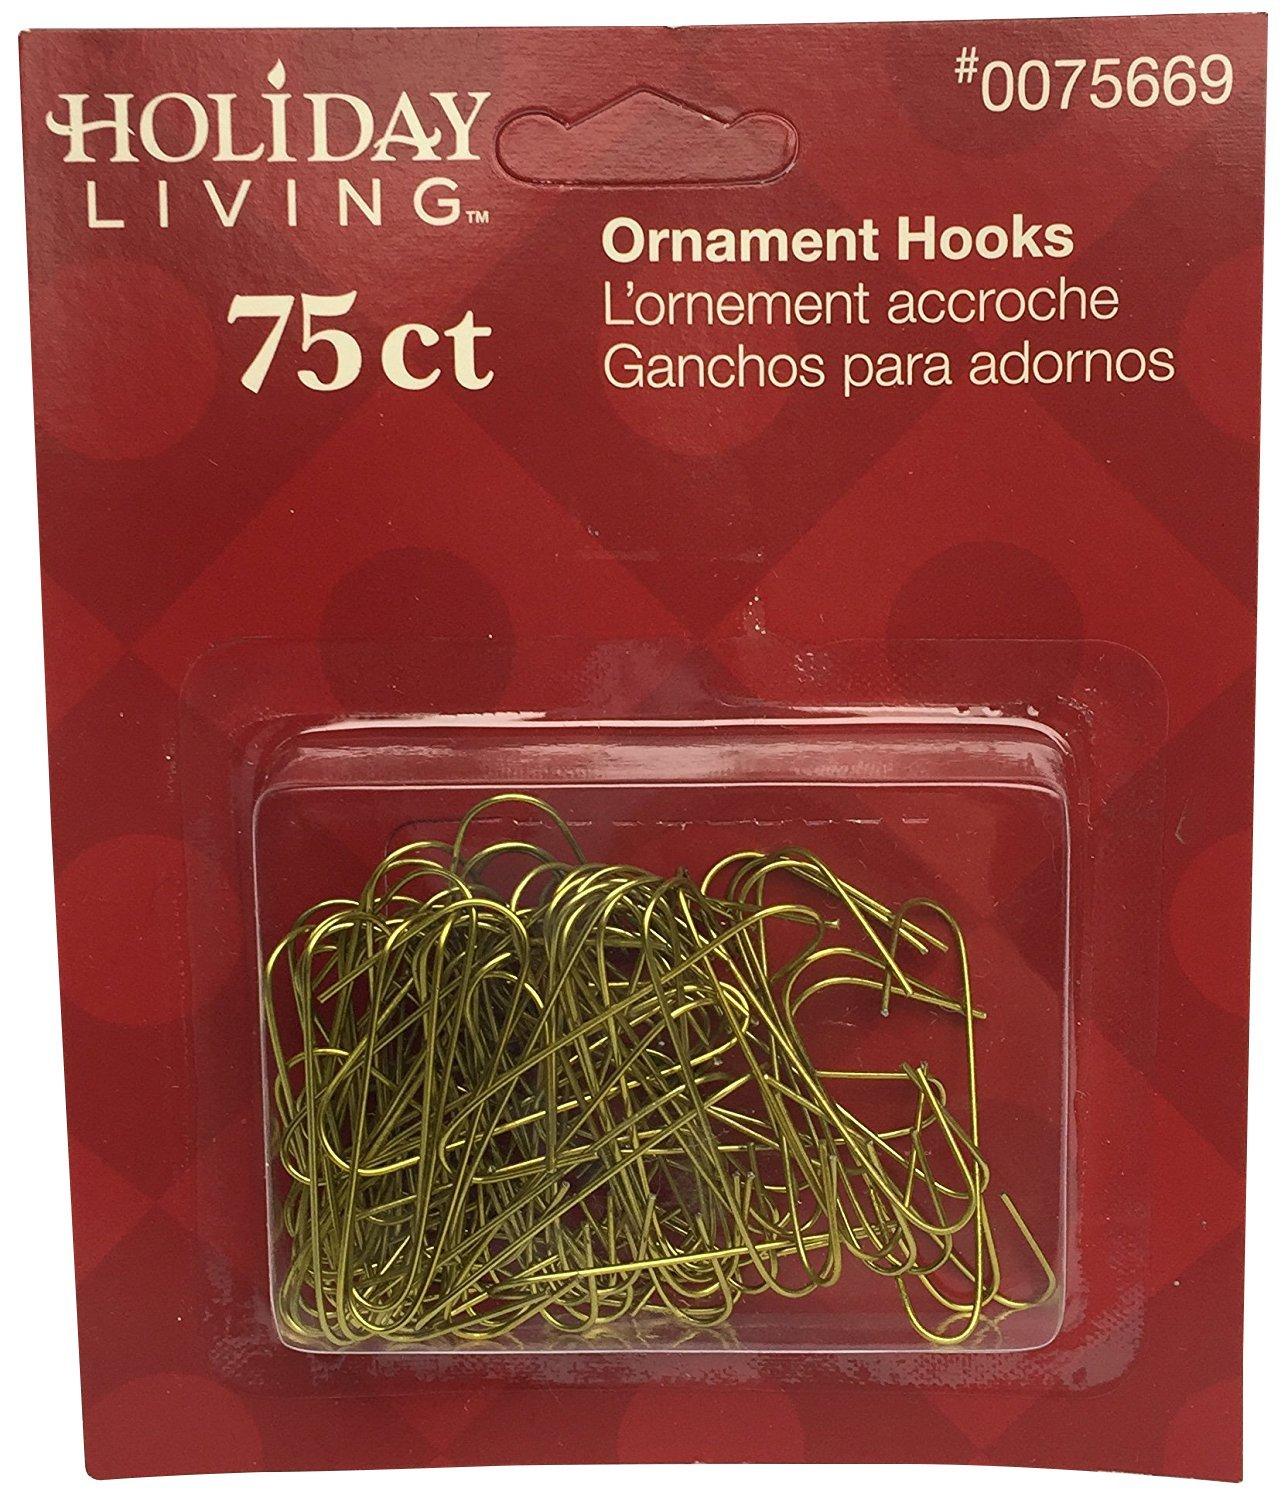 Brass Colored Ornament Hooks: 1 Package of 75 Holiday Living